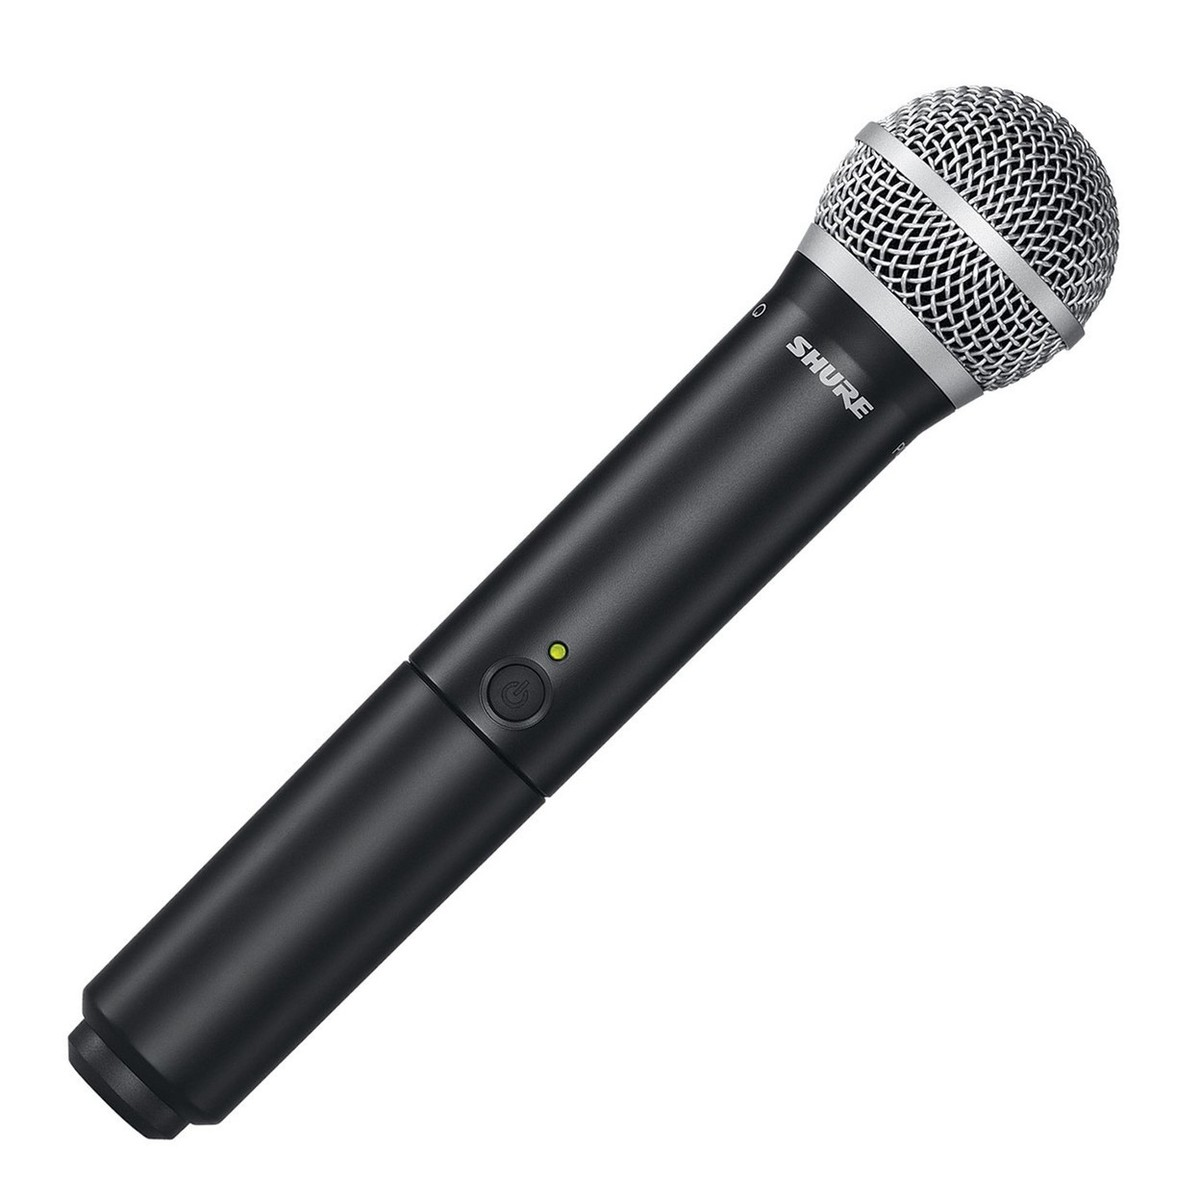 shure blx2 pg58 t11 wireless handheld microphone transmitter at gear4music. Black Bedroom Furniture Sets. Home Design Ideas